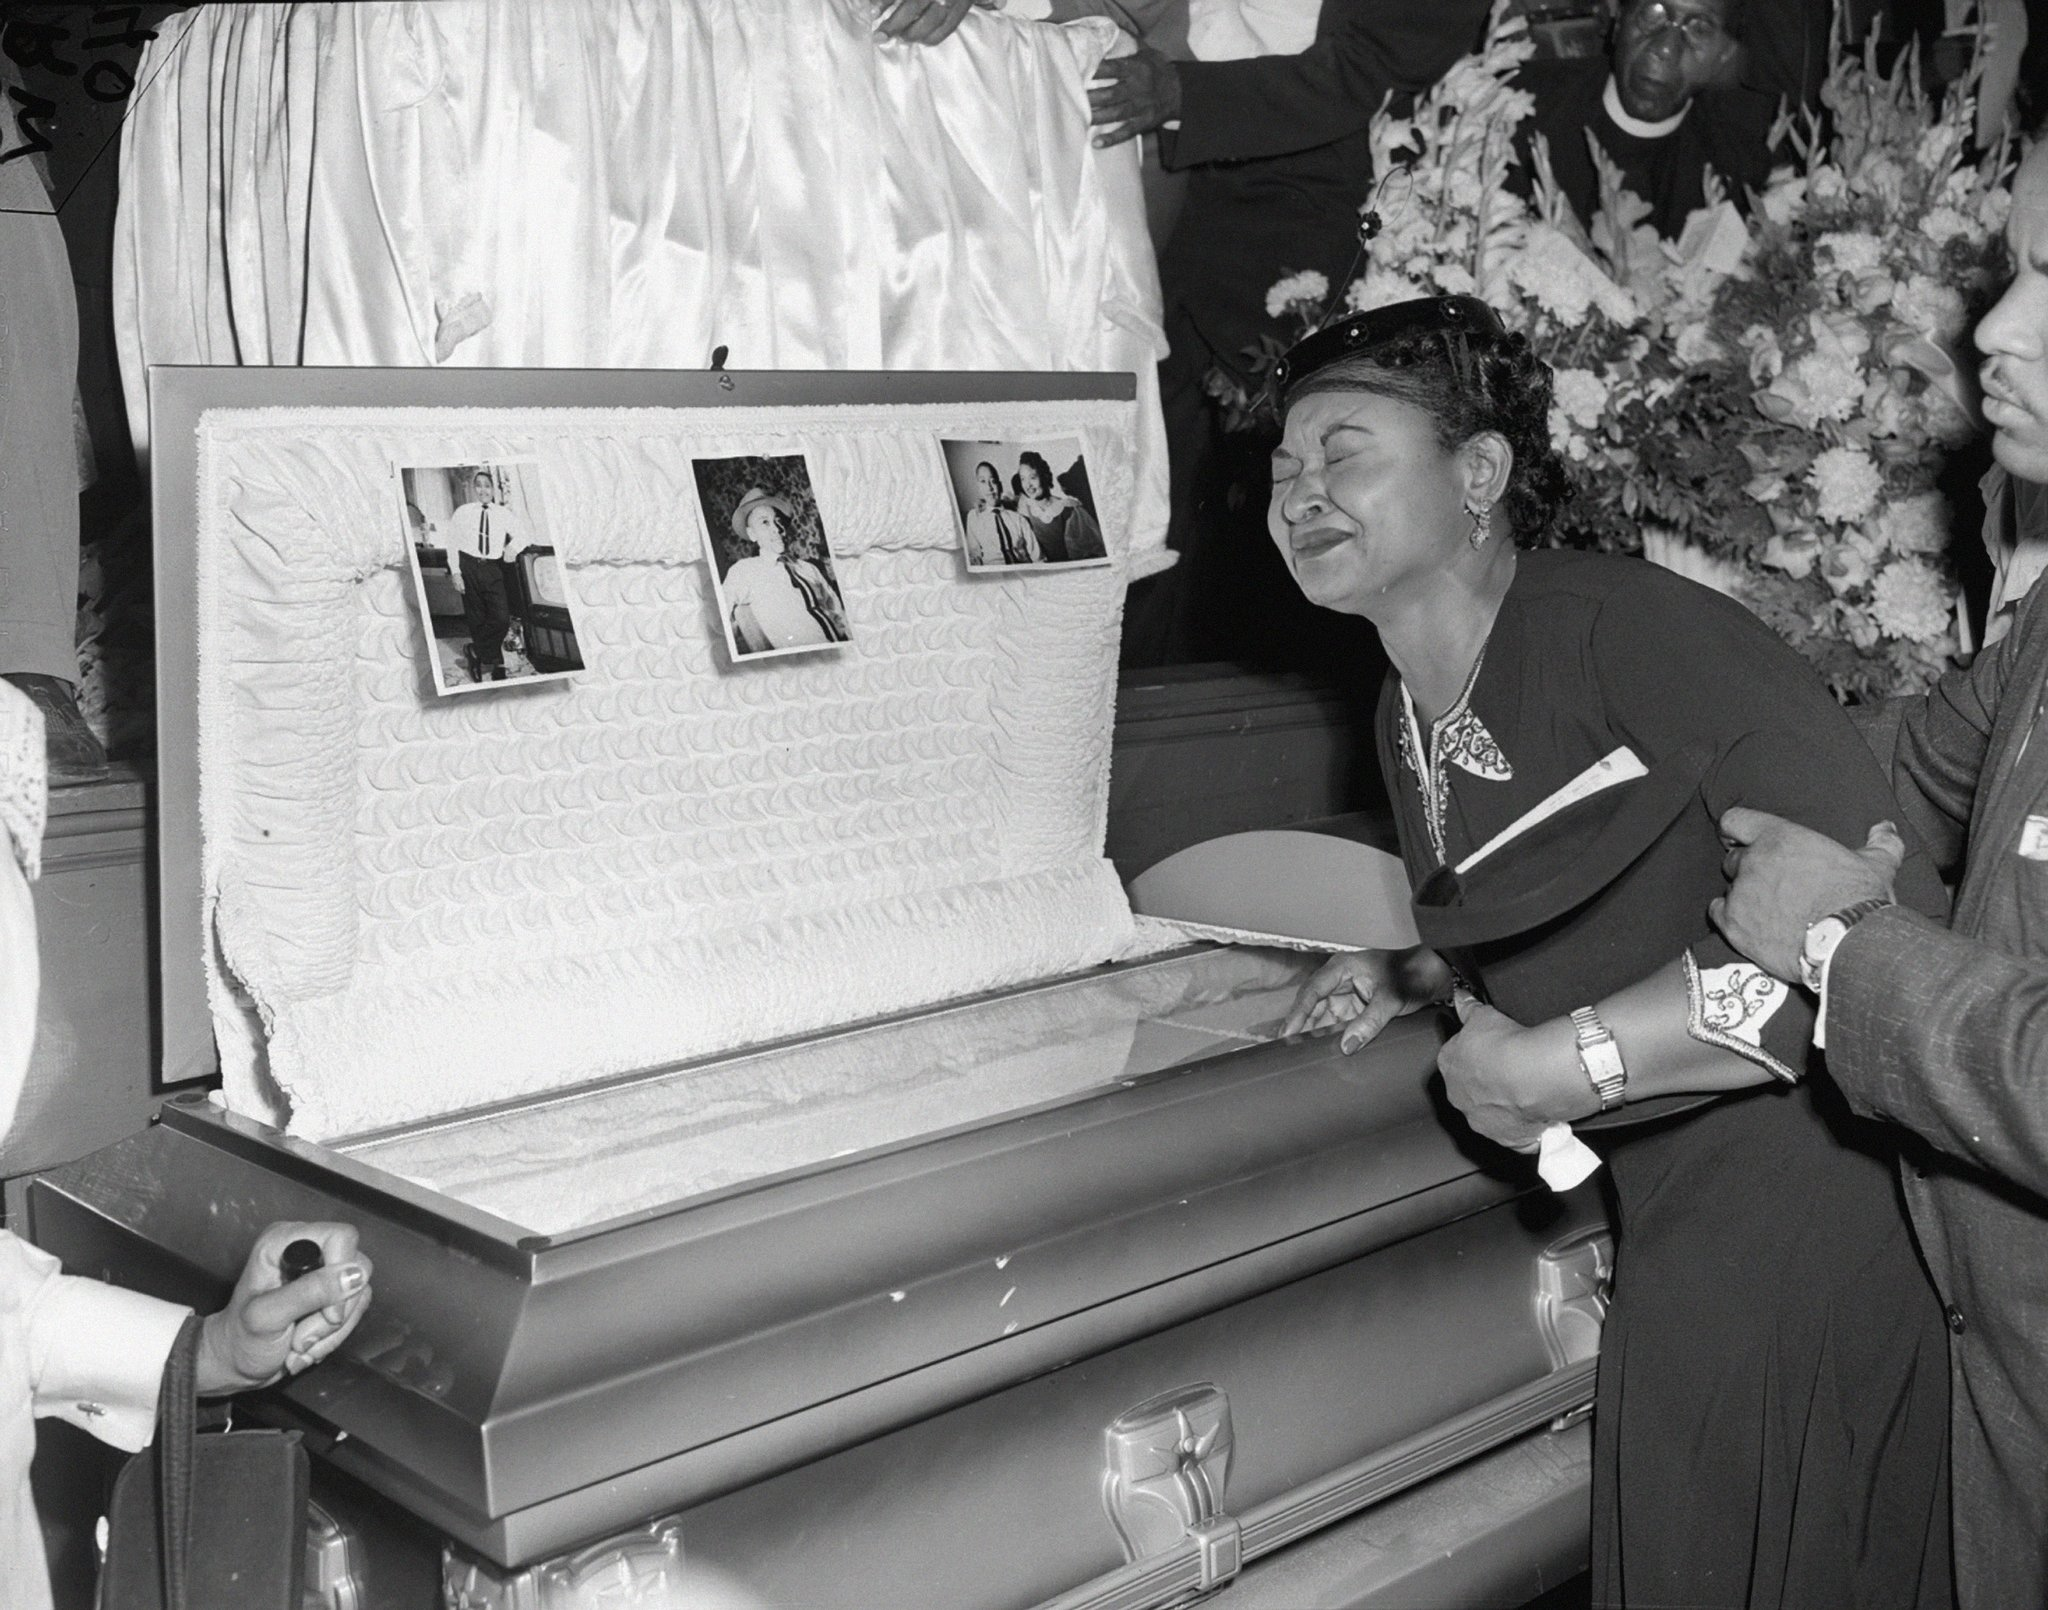 the death of emmett till The death of emmett till, also known as the ballad of emmett till, is a song by american musician and nobel laureate bob dylan about the murder of emmett till till, a 14-year-old african american, was killed on august 28, 1955, by two white men, reportedly after flirting with a white woman.